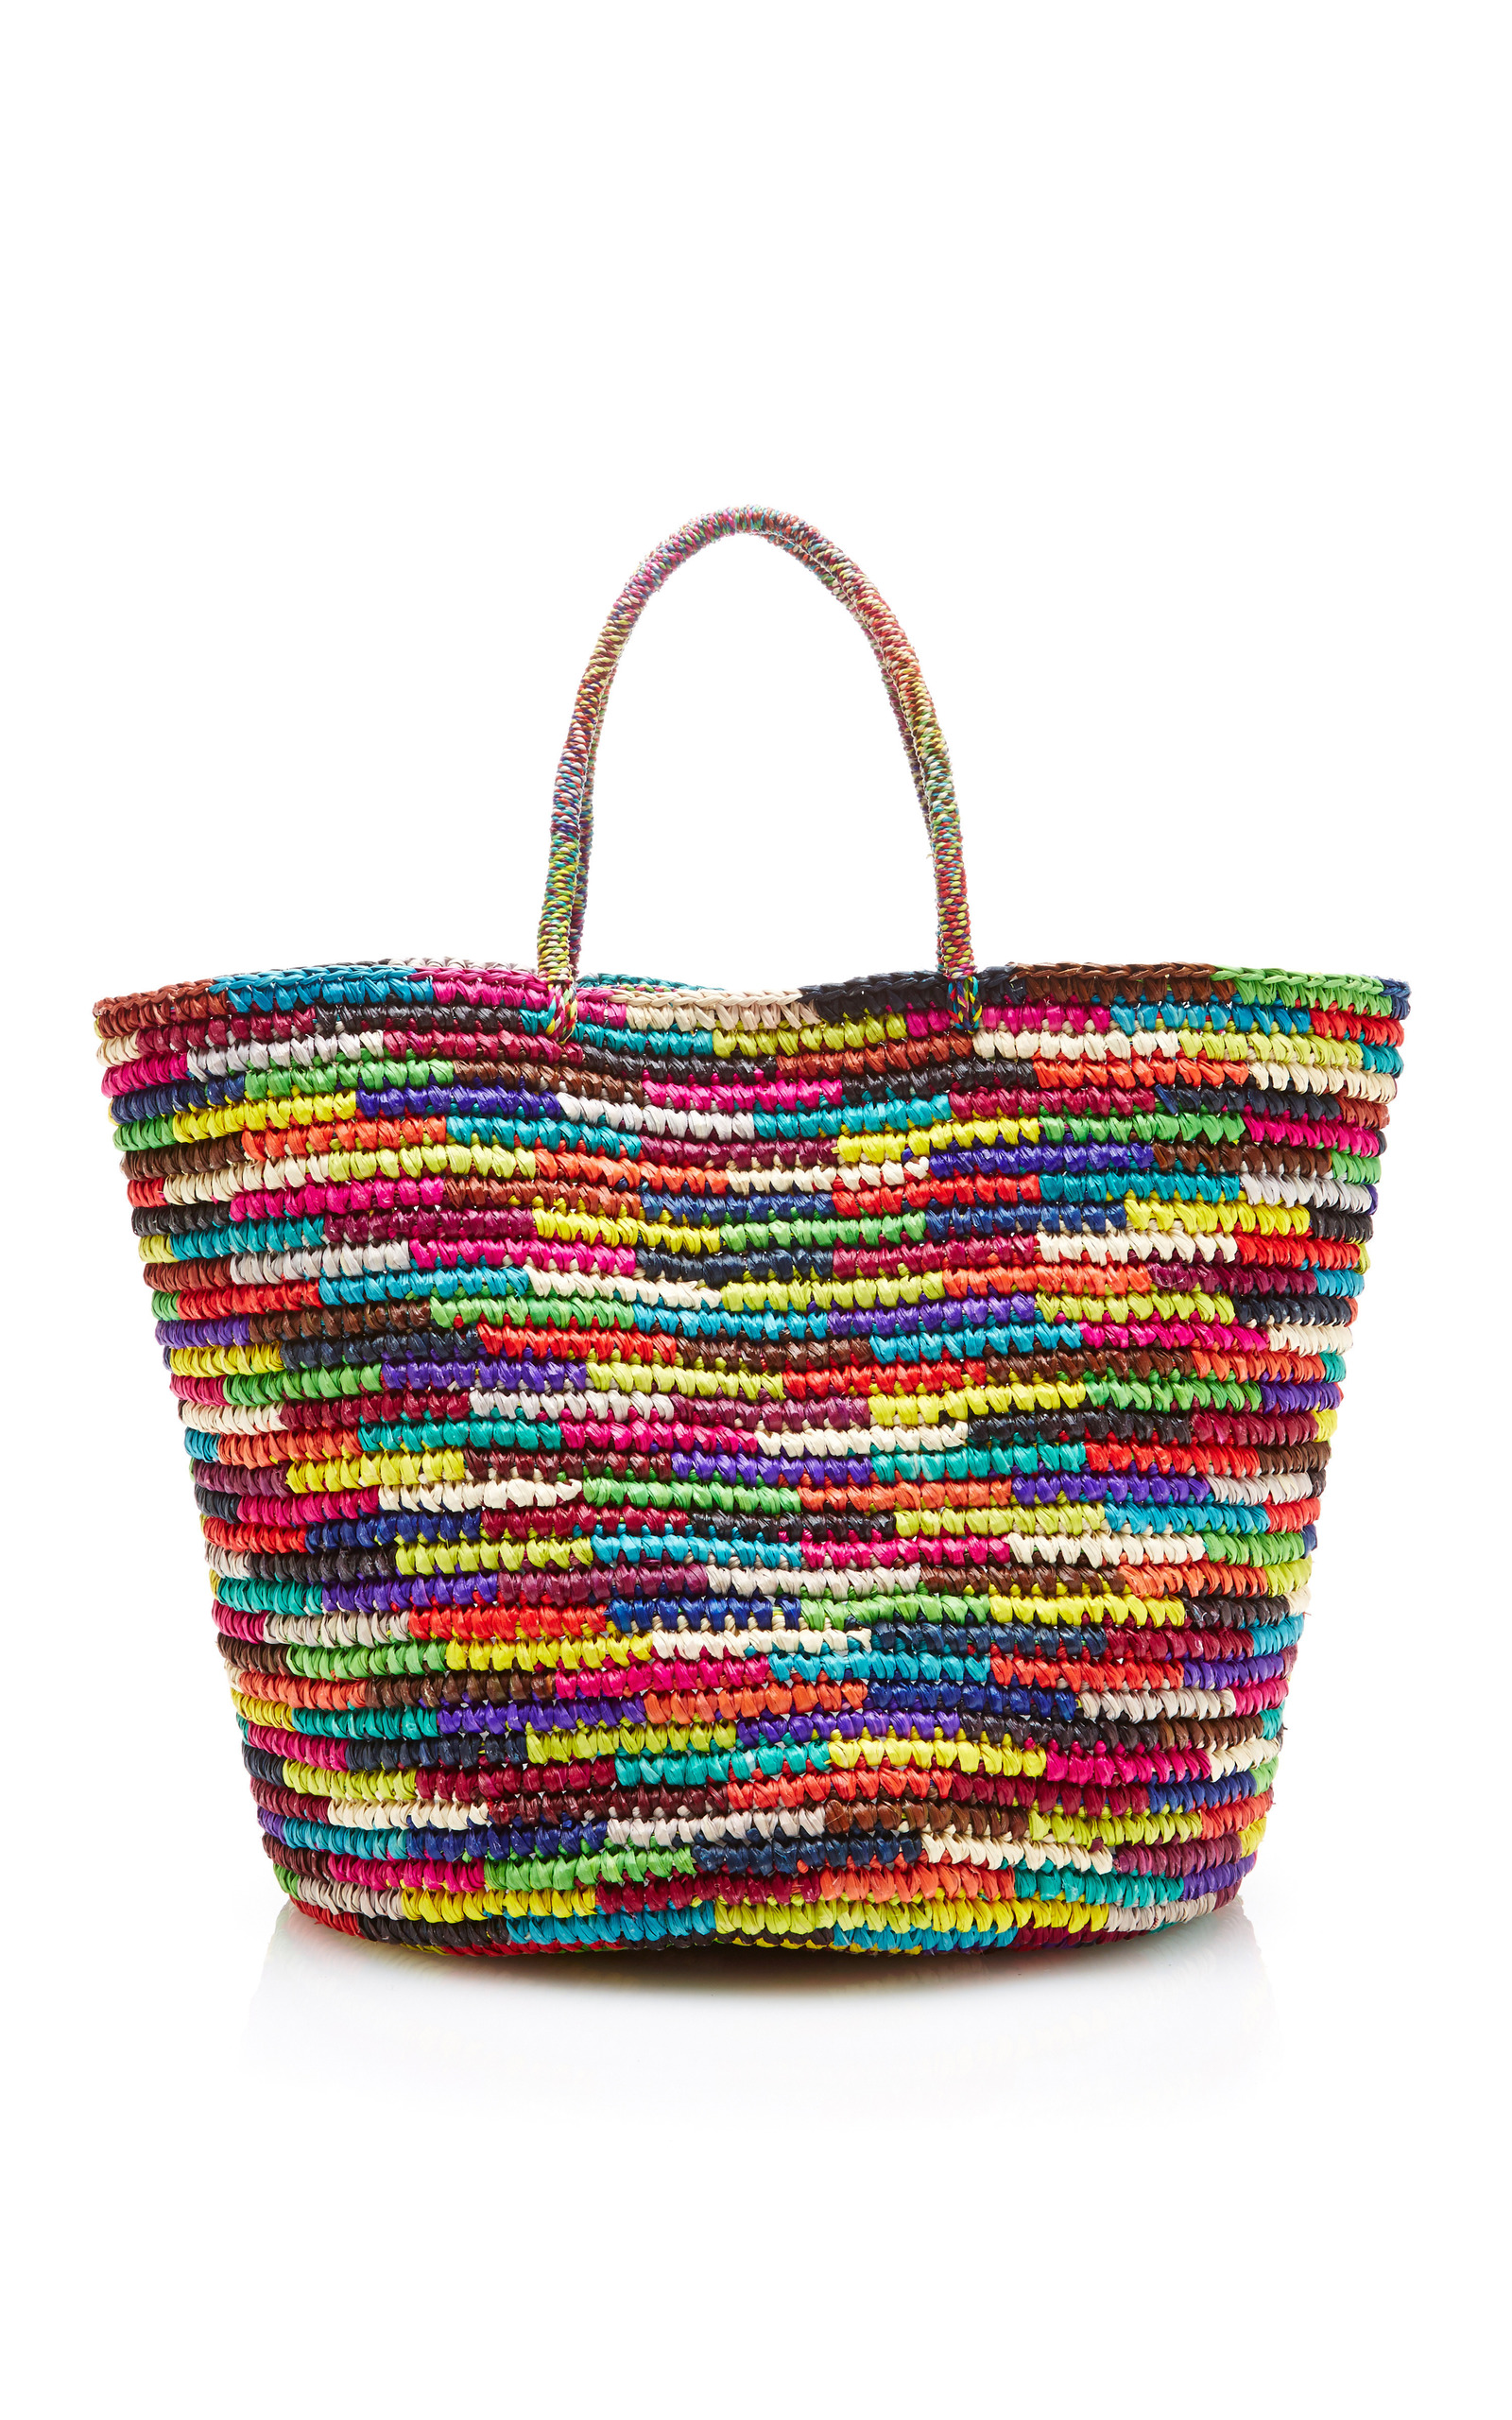 Sensi Studio Woven Toquilla Straw Shoulder Bag Oede3gGA